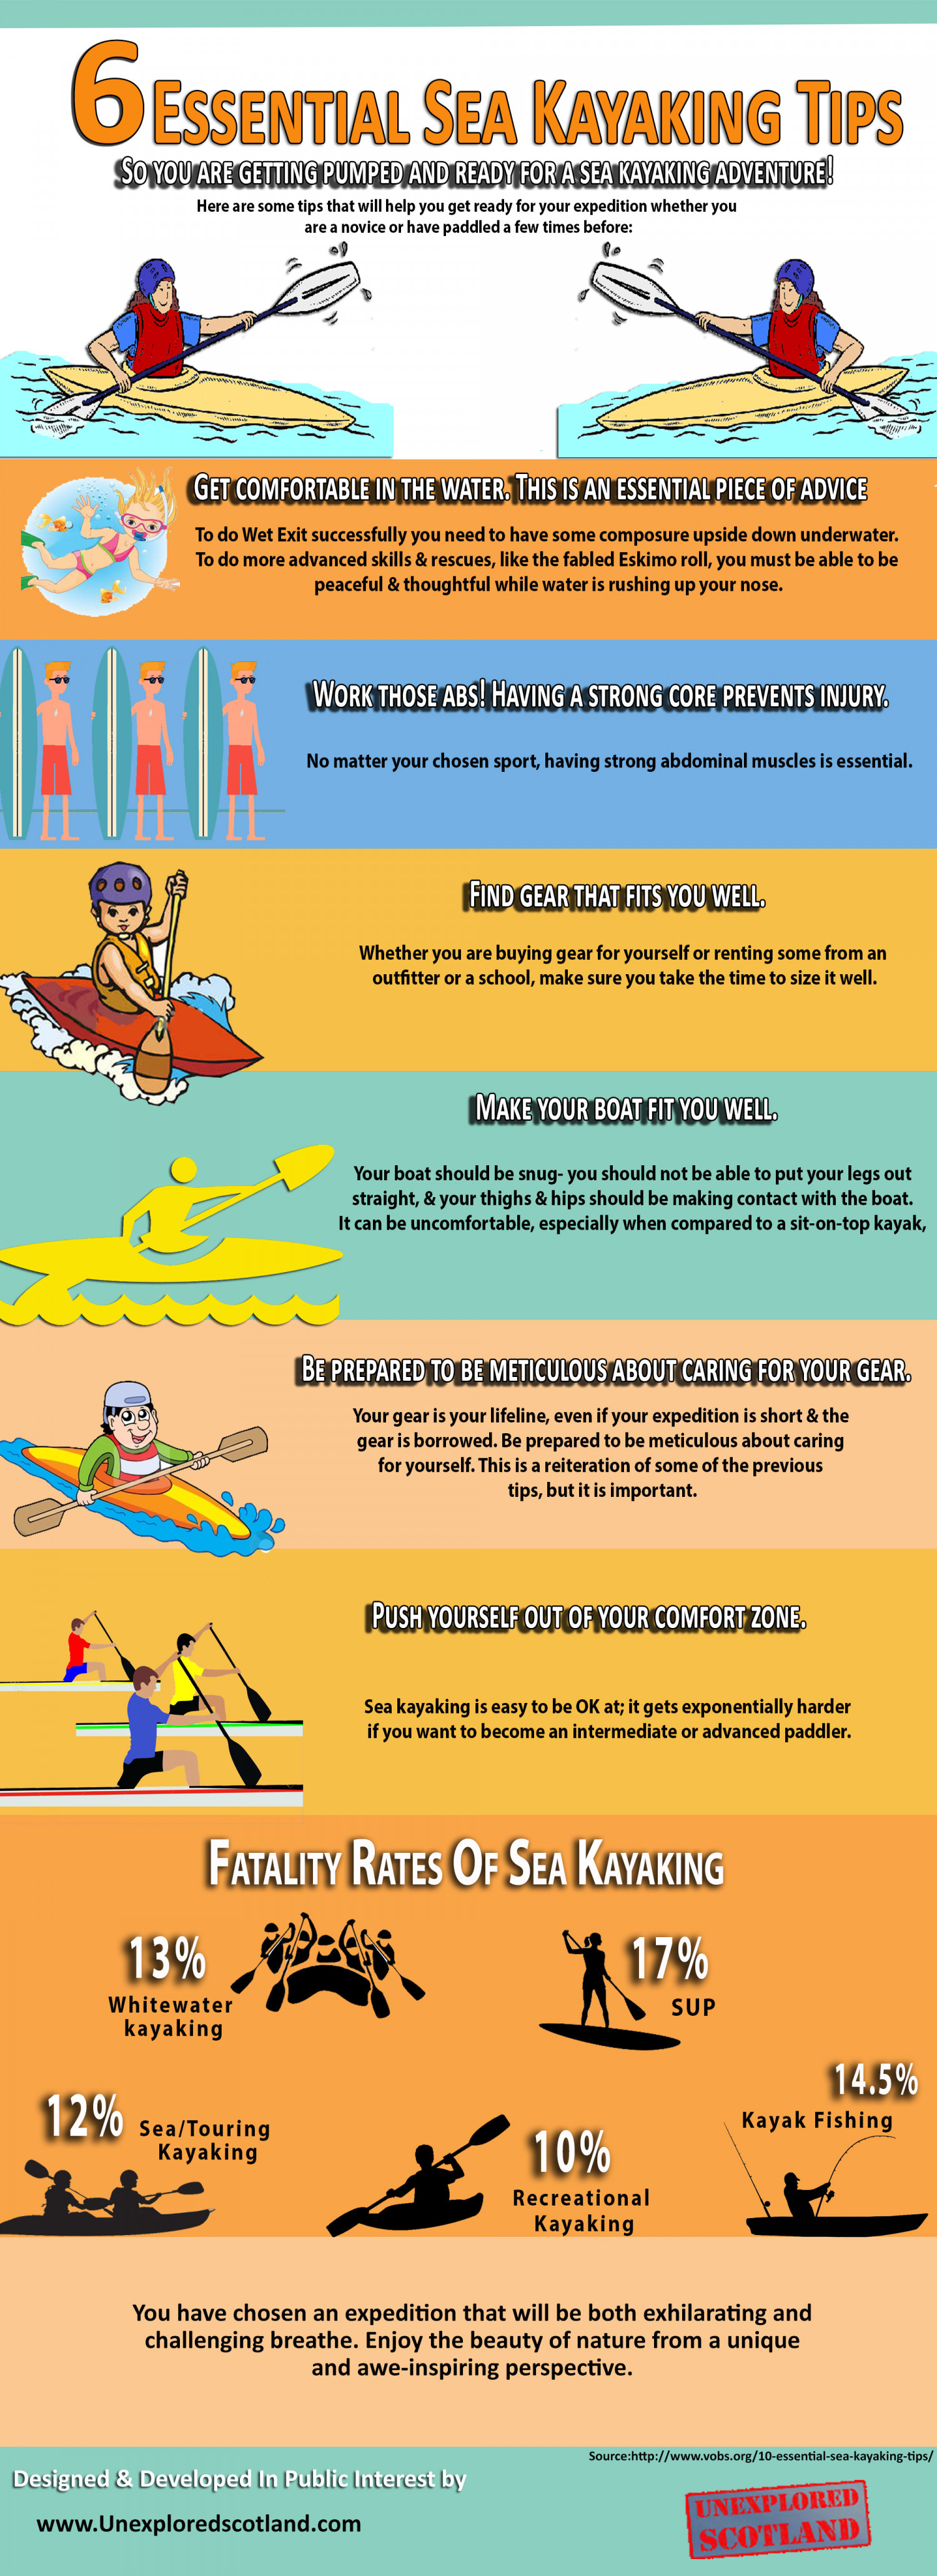 6 Essential Sea Kayaking Tips Infographic